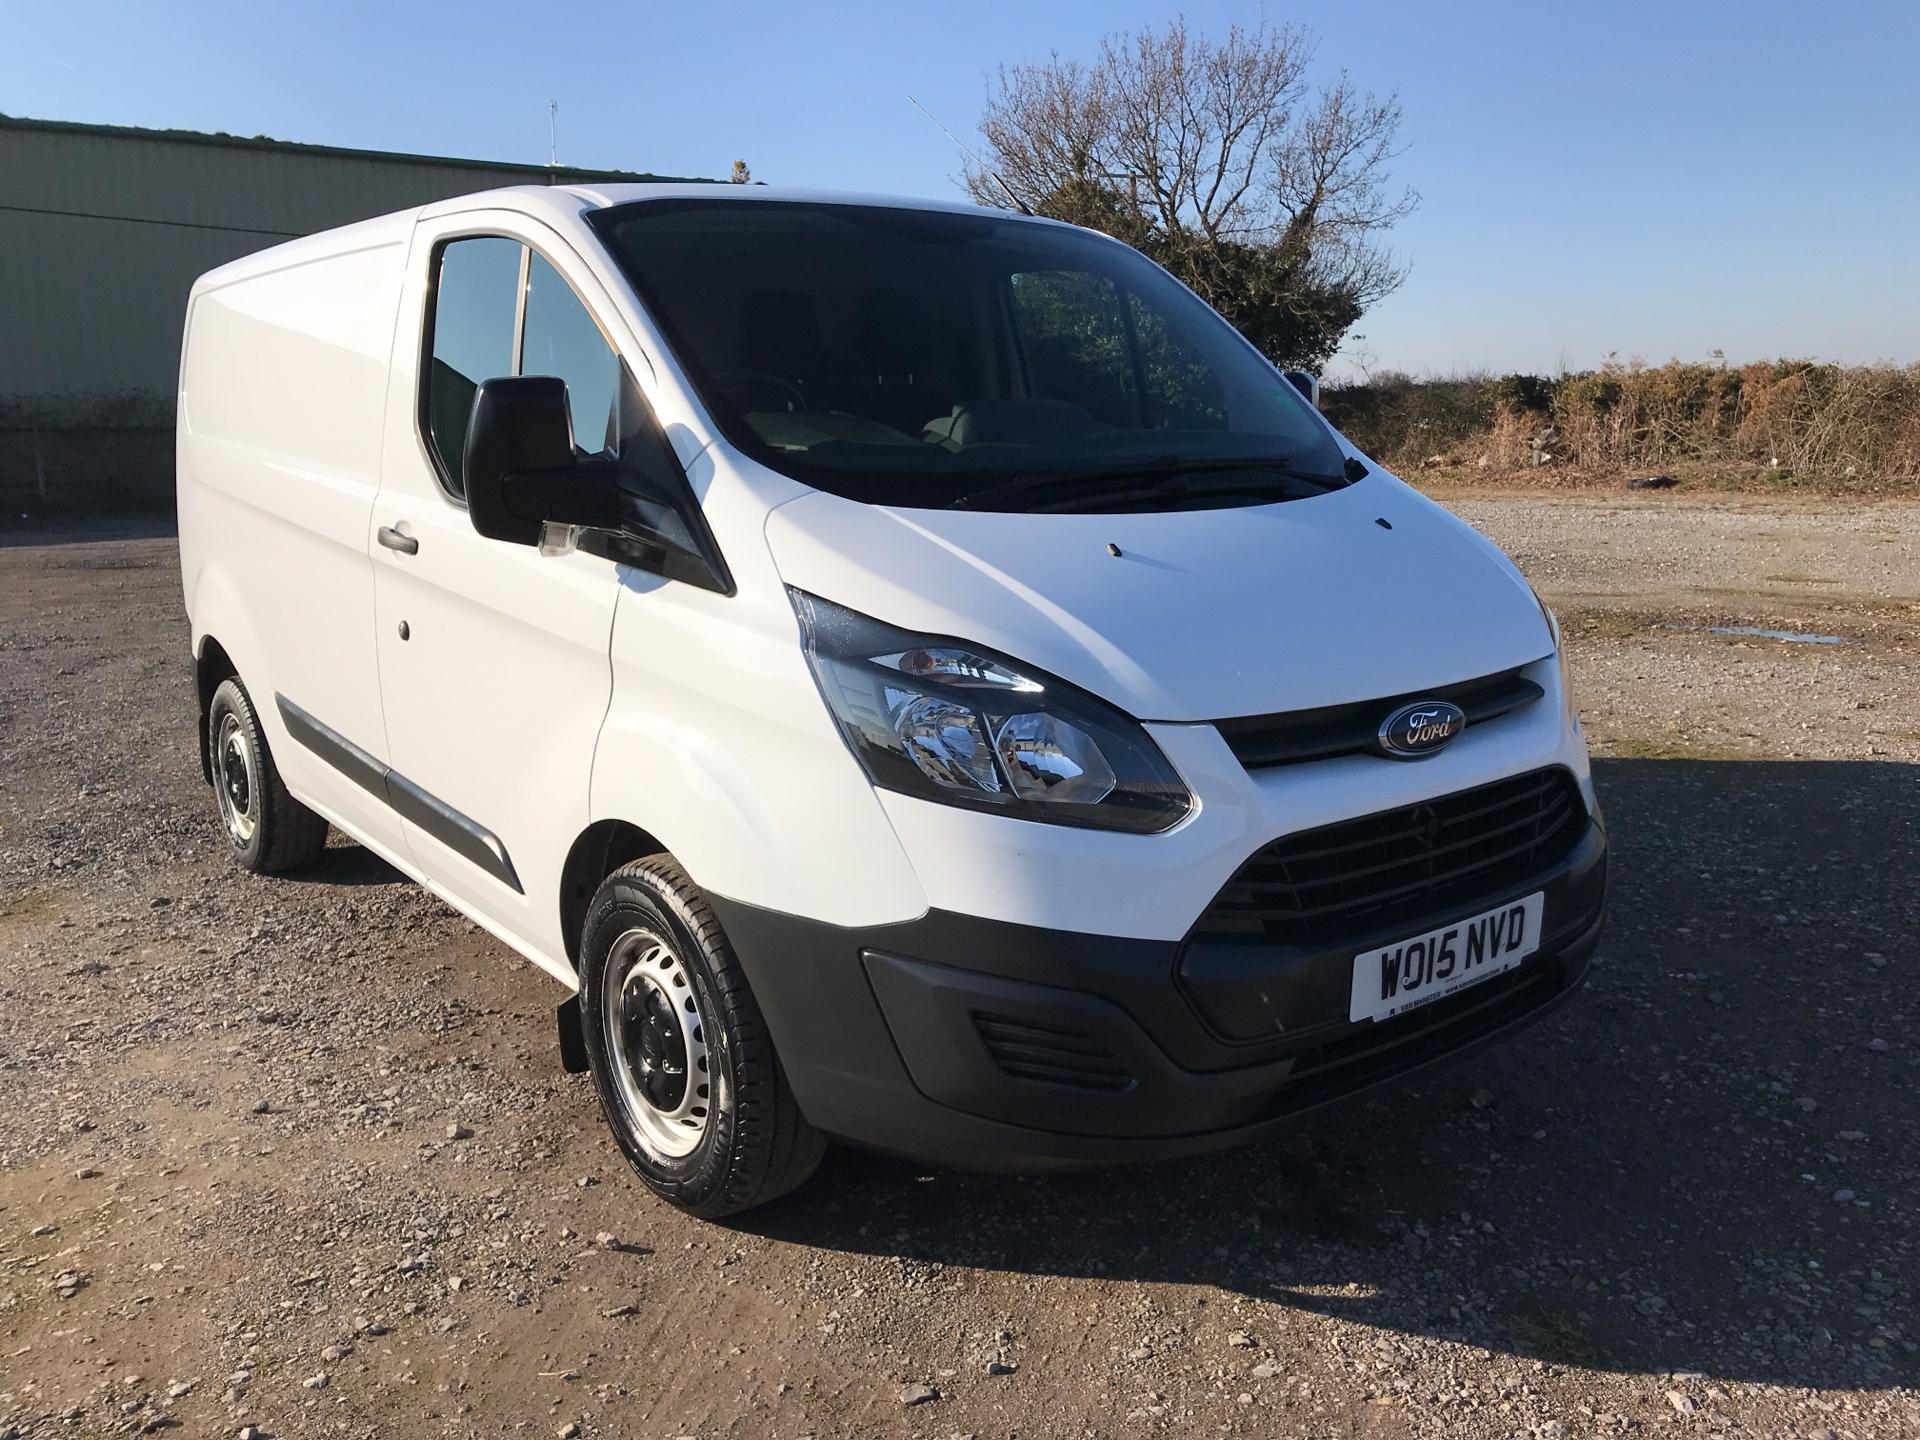 2015 Ford Transit Custom 290 L1 DIESEL FWD 2.2 TDCI 100PS LOW ROOF VAN EURO 5 (WO15NVD)